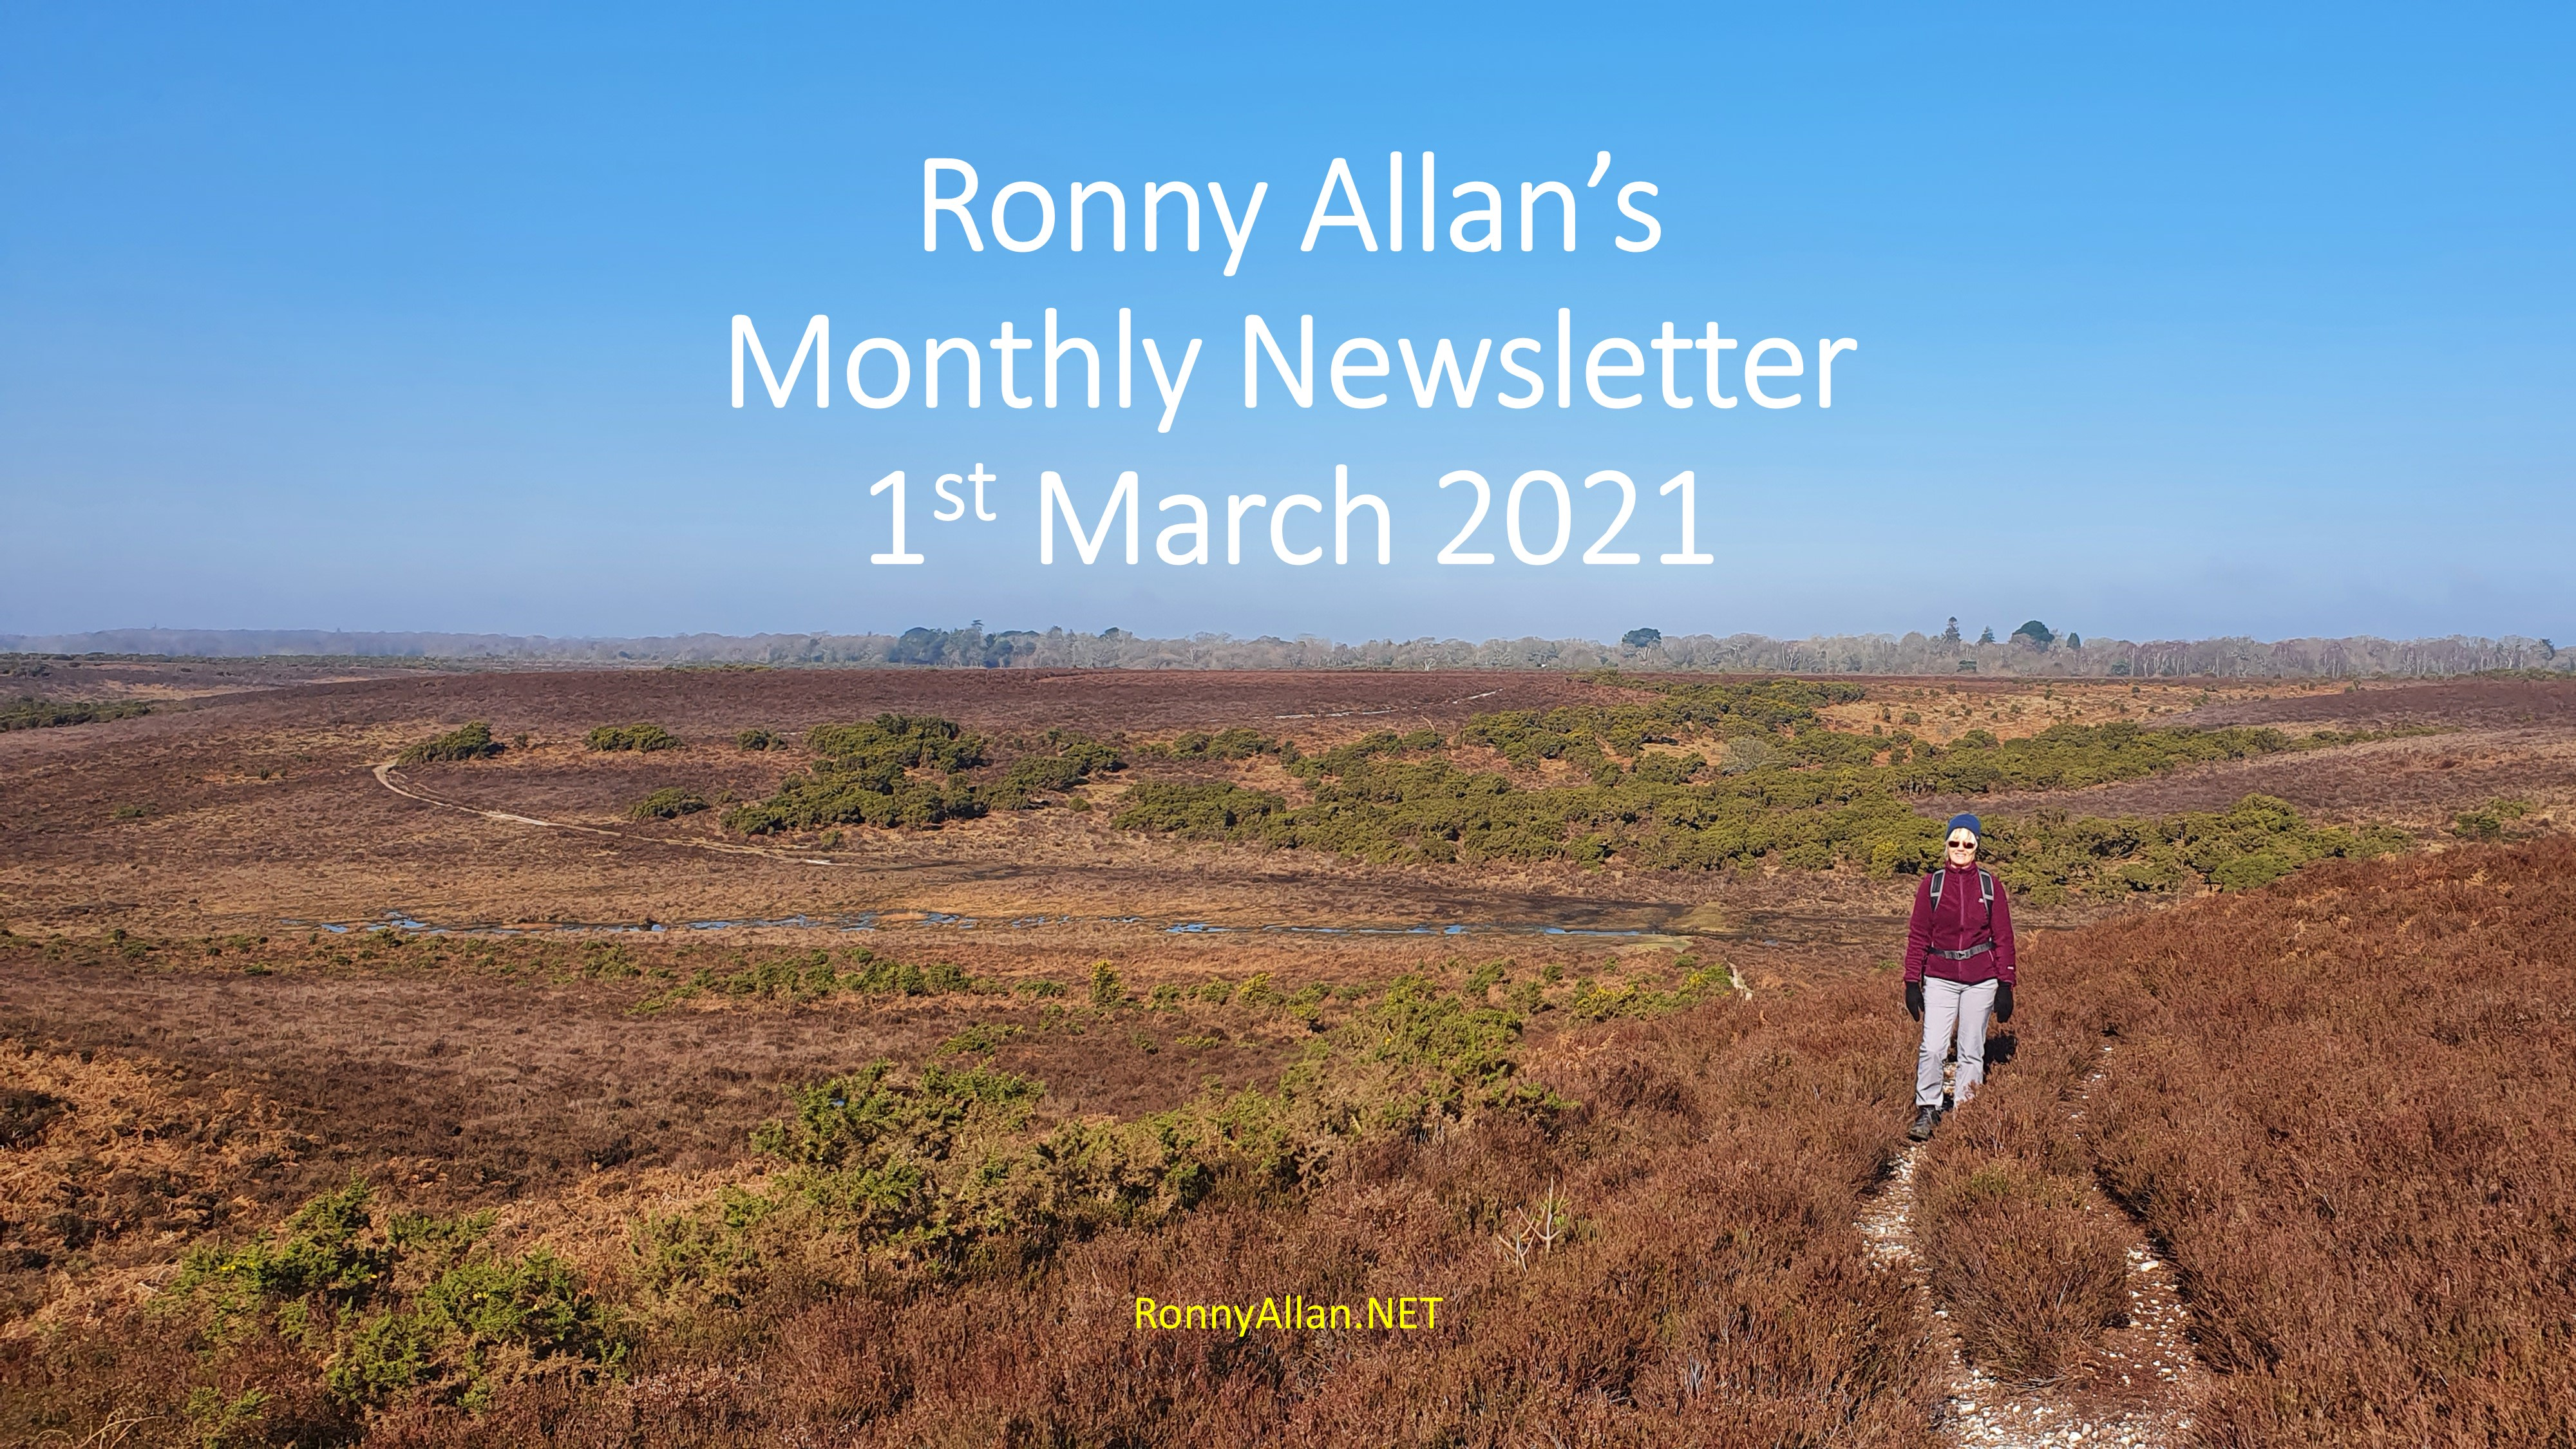 Ronny Allan Newsletter – 1st March 2021